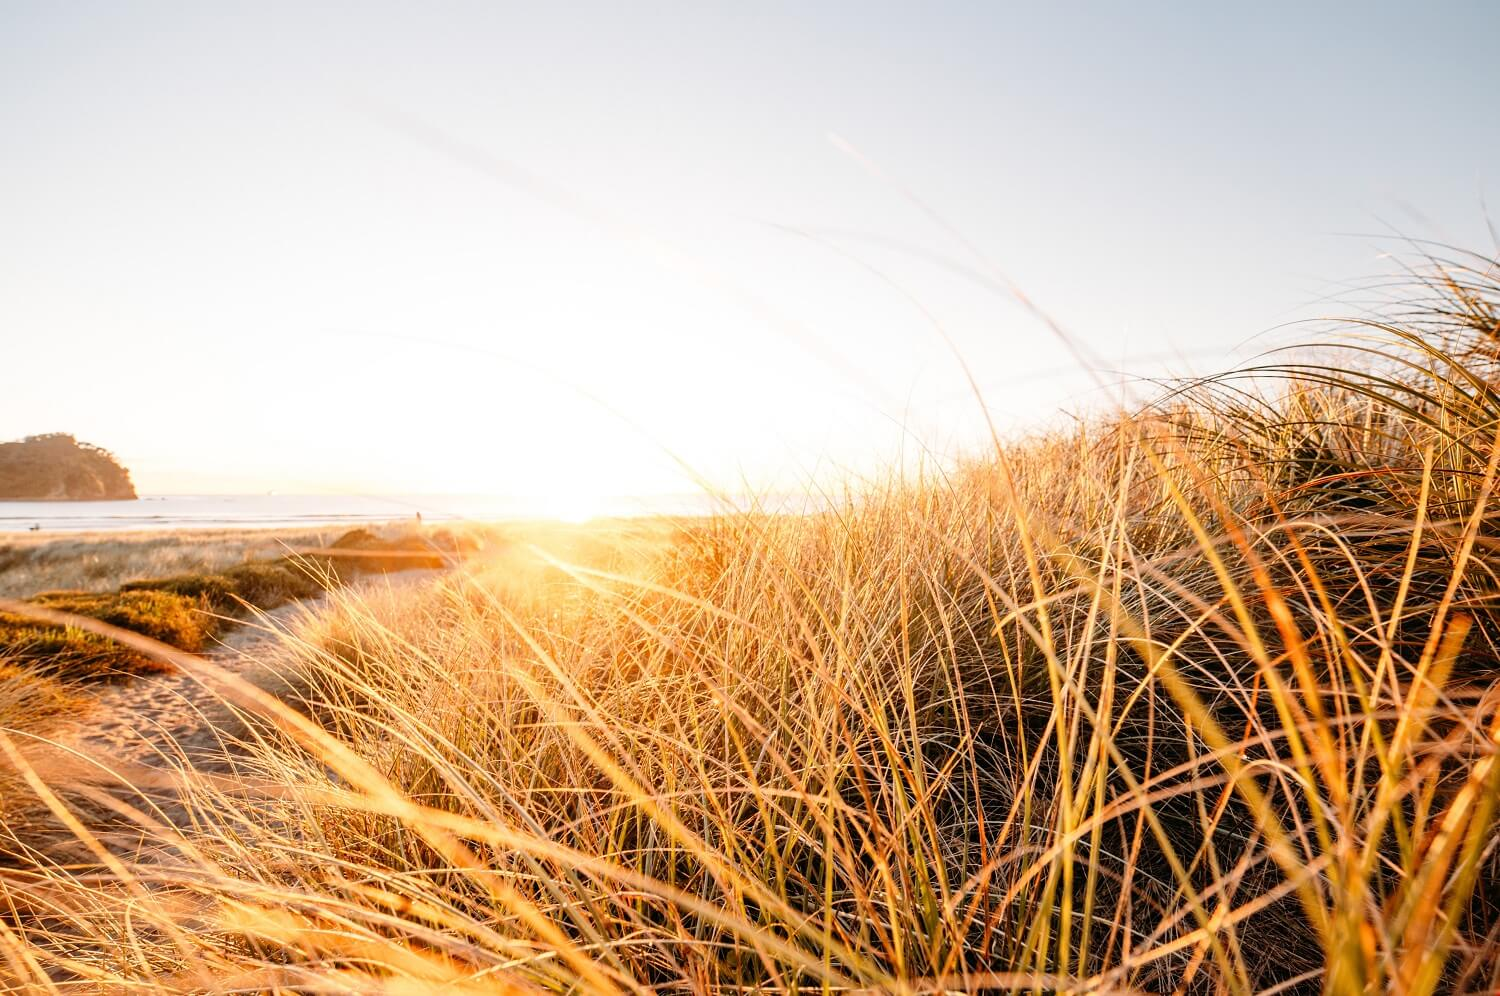 """When we think of """"vitamins,"""" we know they're super-important for health. But vitamin D is special. This week Midlife Menu looks at the so-called """"sunshine vitamin"""" and suggest 3 ways to get more of it into your life. www.midlifemenu.com/blog/vitamin-d"""